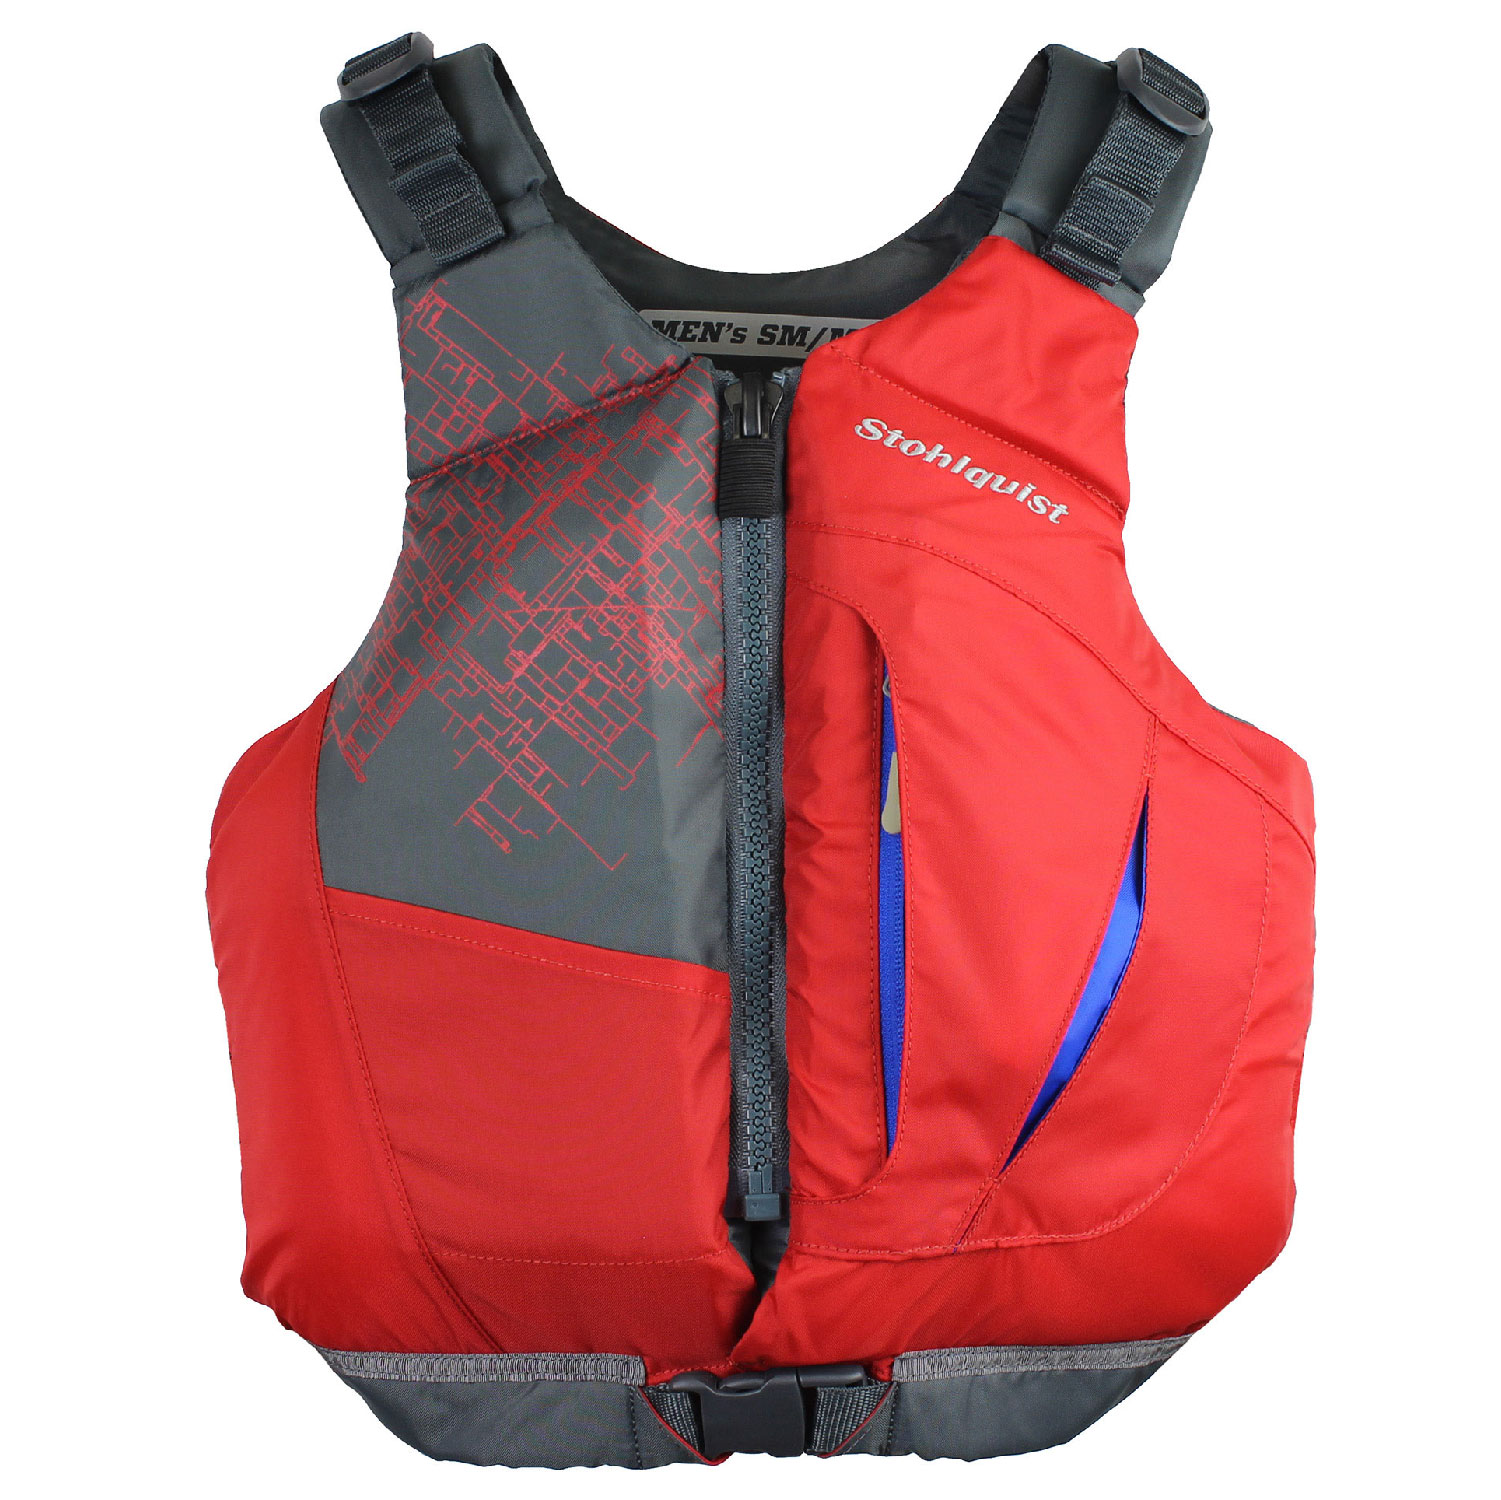 stohlquist-life-vest-pfd-escape-adult-men-s-01.jpg